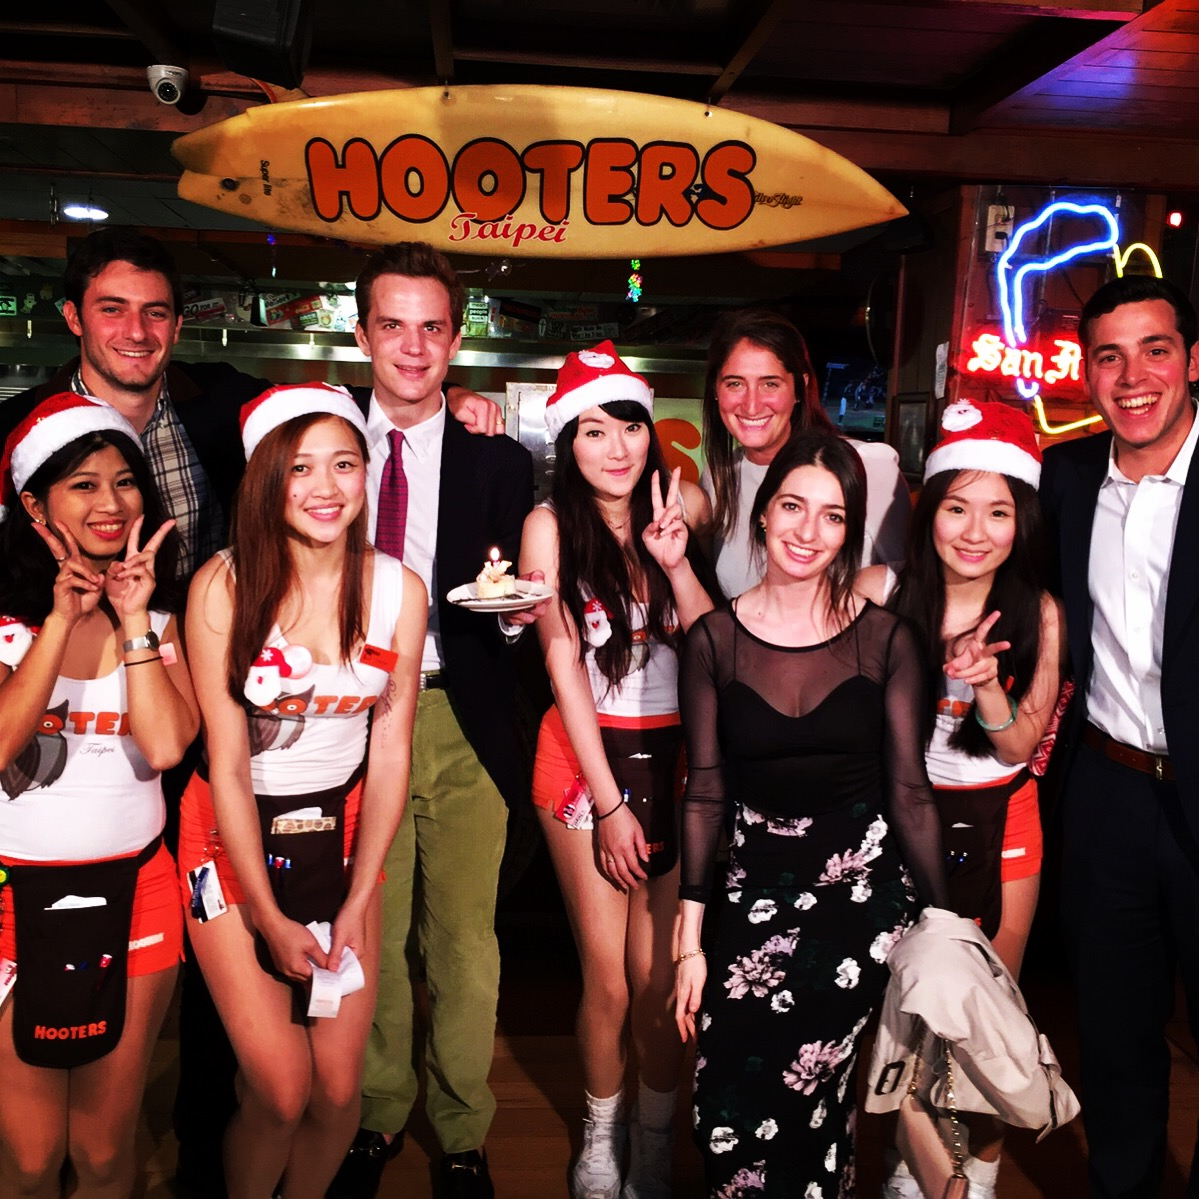 Christmas at Hooters Taipei, of course